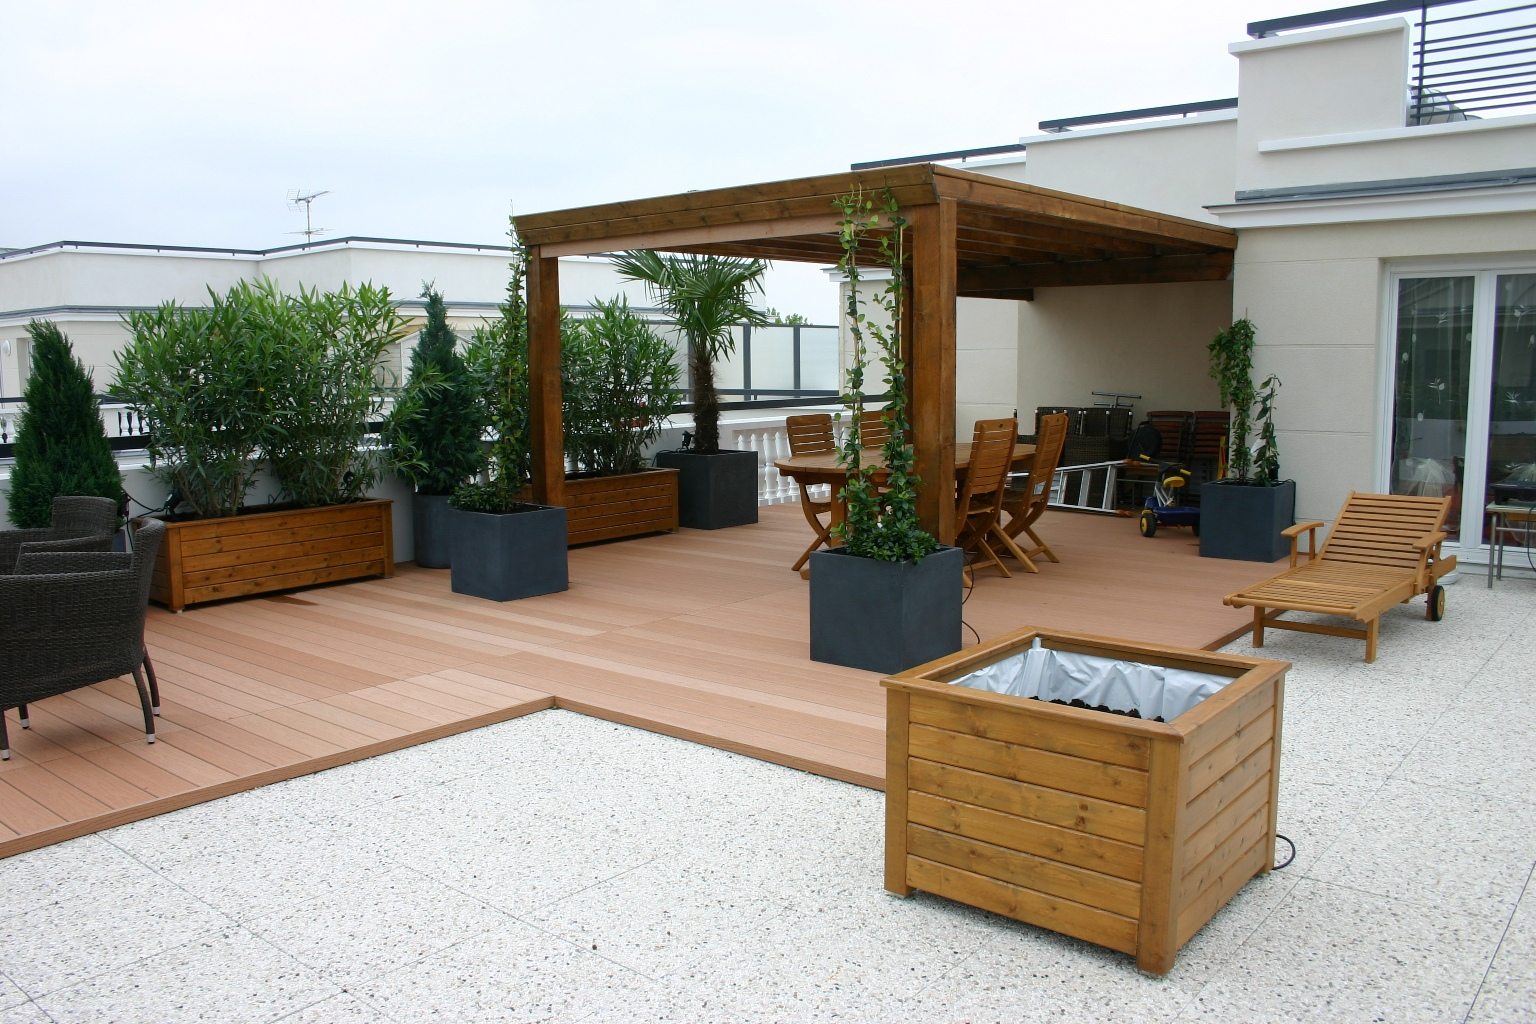 Comment am nager sa terrasse for Amenagement terrasse exterieure appartement